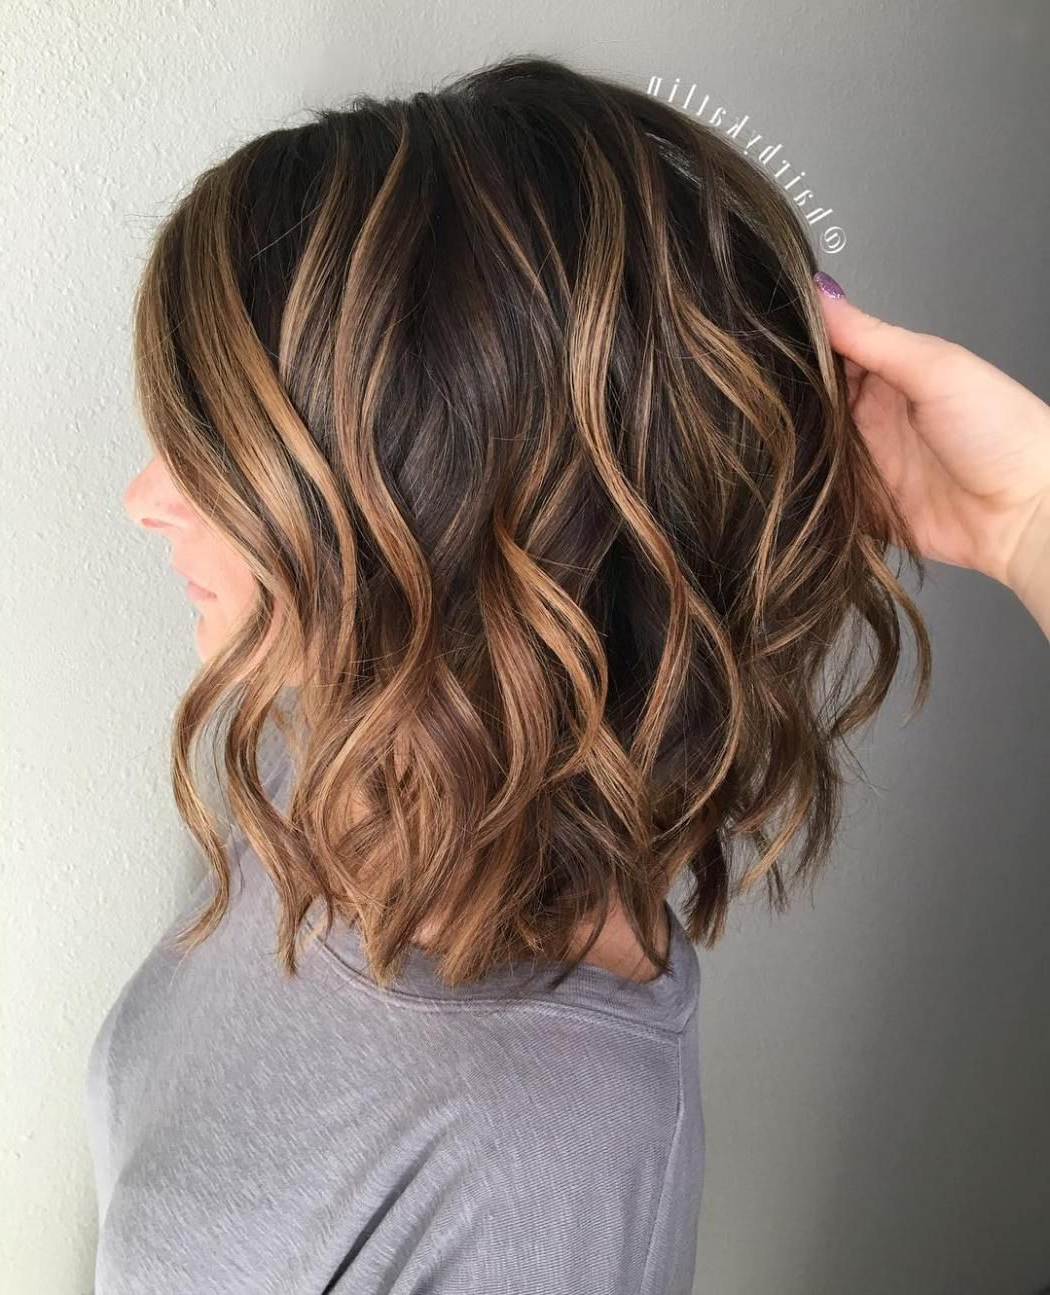 Image Result For Caramel Highlights On Dark Brown Curly Hair Medium Within Brown Curly Hairstyles With Highlights (View 13 of 20)